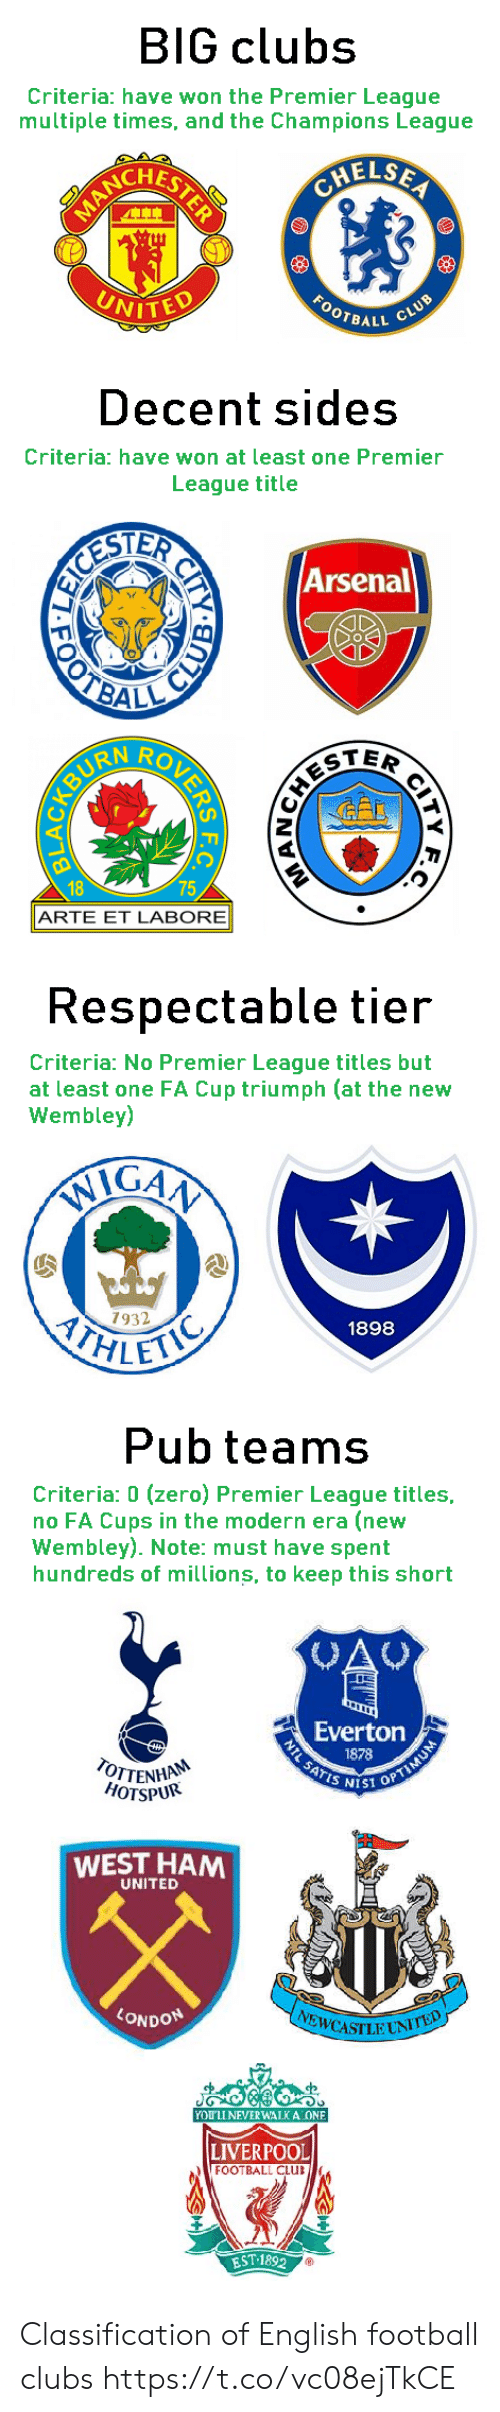 tier: BIG clubs  Criteria: have won the Premier League  multiple times, and the Champions League  CHELSEA  ACRLSTERE  FOOTRALL CLUB  UNITED   Decent sides  Criteria: have won at least one Premier  League title  ESTER  OTBAL  Arsenal  TER  18  75  ARTE ET LABORE  CITY  र य श क  URENBYD   Respectable tier  Criteria: No Premier League titles but  at least one FA Cup triumph (at the new  Wembley)  IGAA  ITHLET  7932  1898   Pub teams  Criteria: 0 (zero) Premier League titles,  no FA Cups in the modern era (new  Wembley). Note: must have spent  hundreds of millions, to keep this short  CAU  Everton  1878  NTL SATIS SST OPTIMUM  OTTENHA  HOTSPUR  WEST HAM  UNITED  LONDON  EWCASILUNITED  YOU'LL NEVER WALKA ONE  LIVERPOOL  FOOTBALL CLUB  EST 1892 Classification of English football clubs https://t.co/vc08ejTkCE